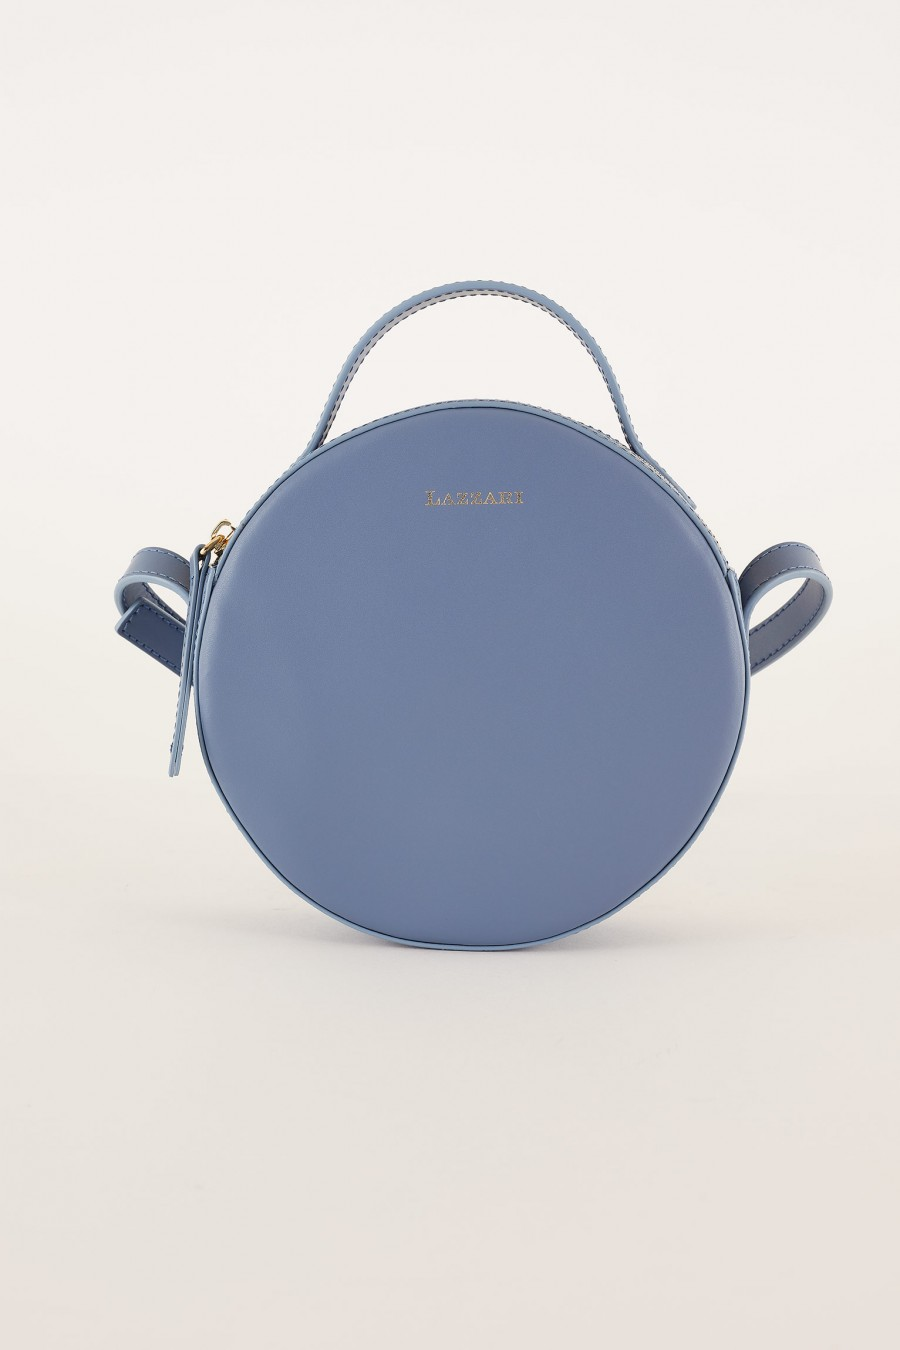 light blue round shoulder bag